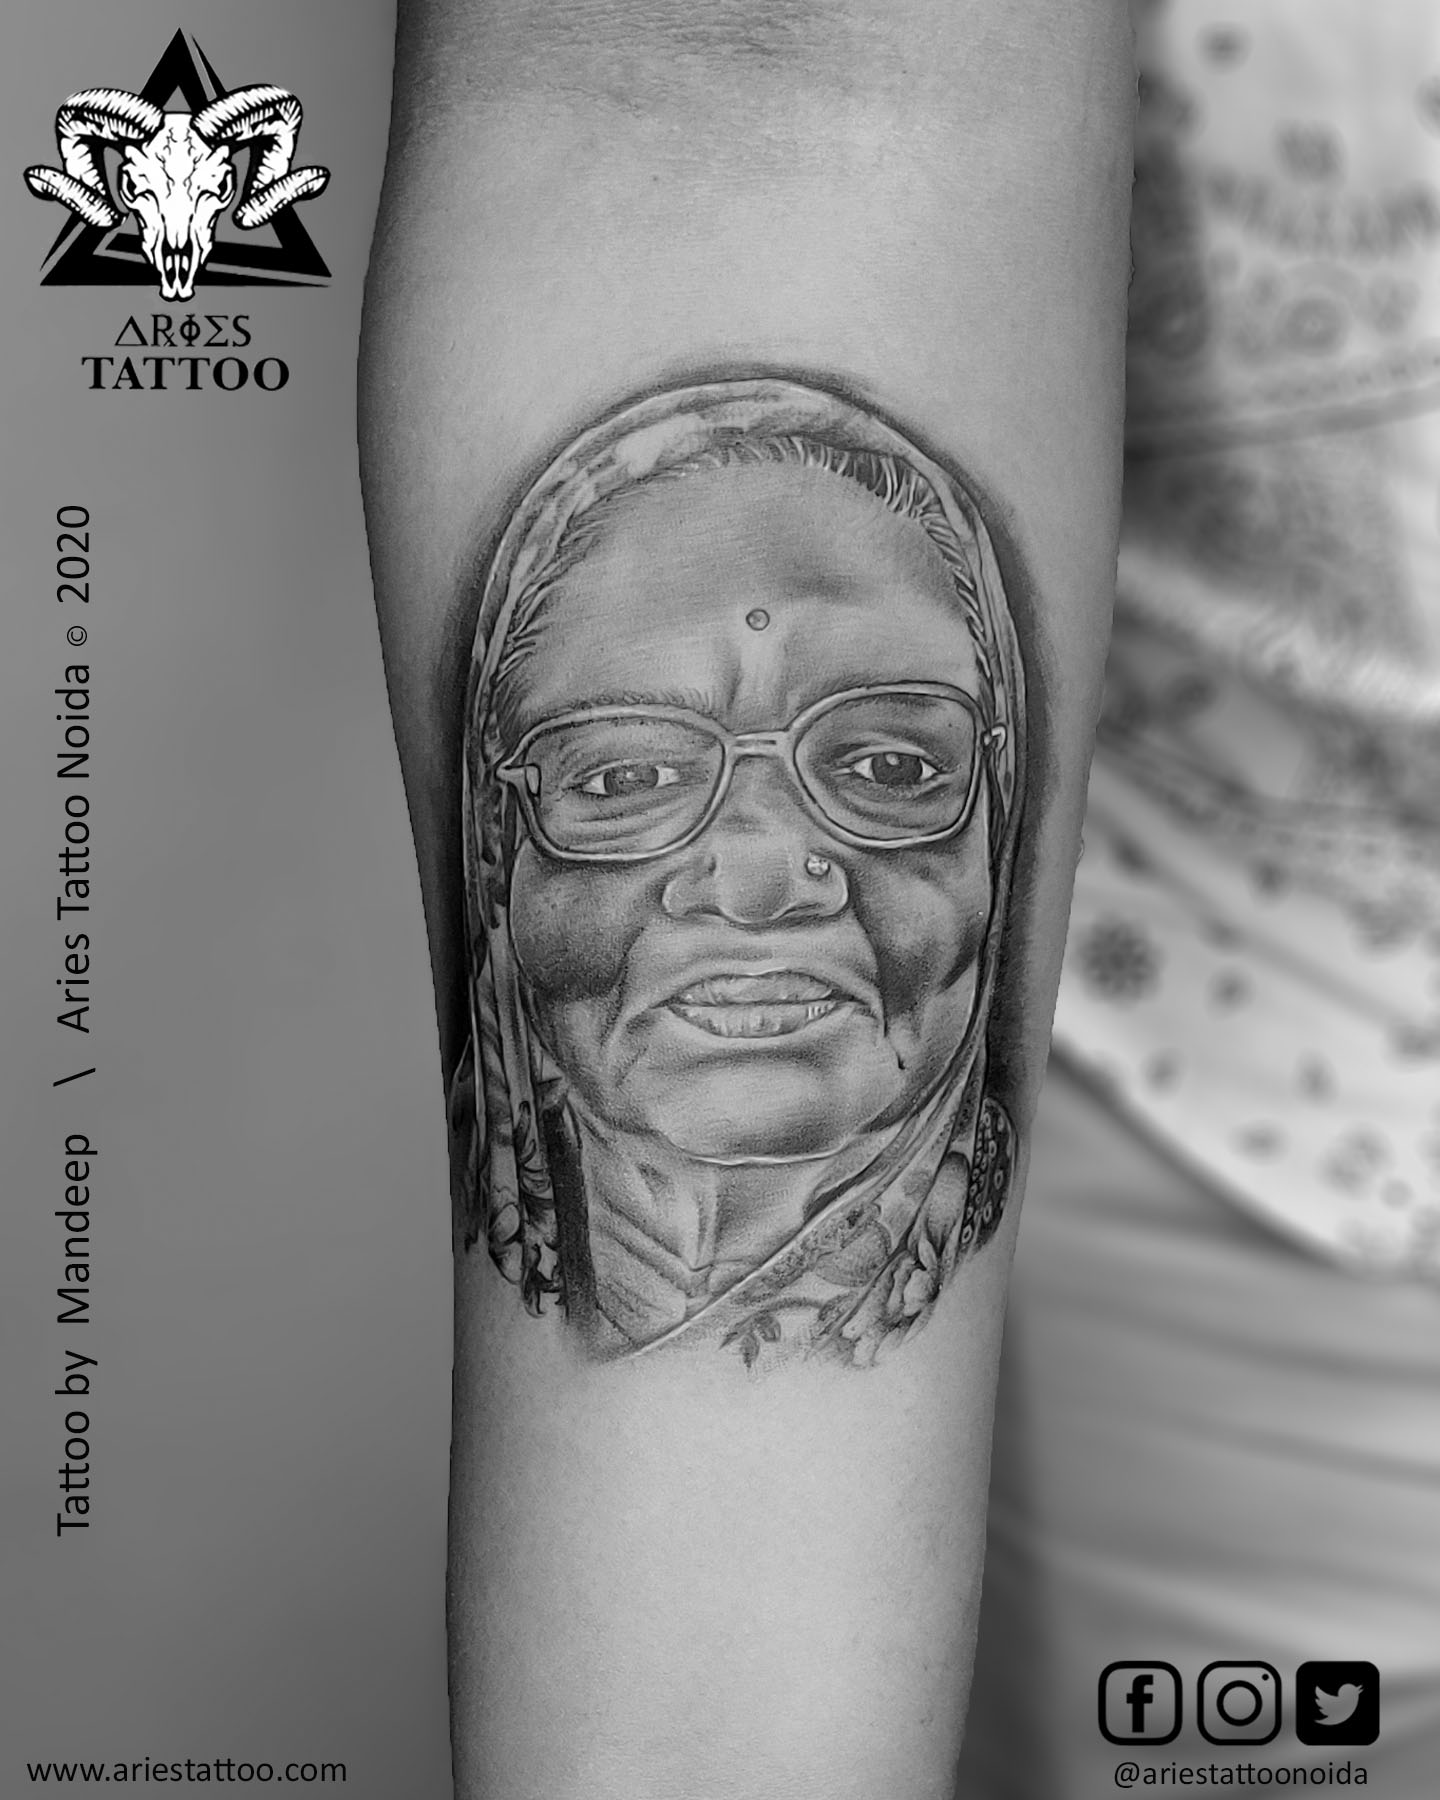 daadi maa`s portrait tattooo |Aries Tattoo Noida | Tattoo Shop and Studio In Noida